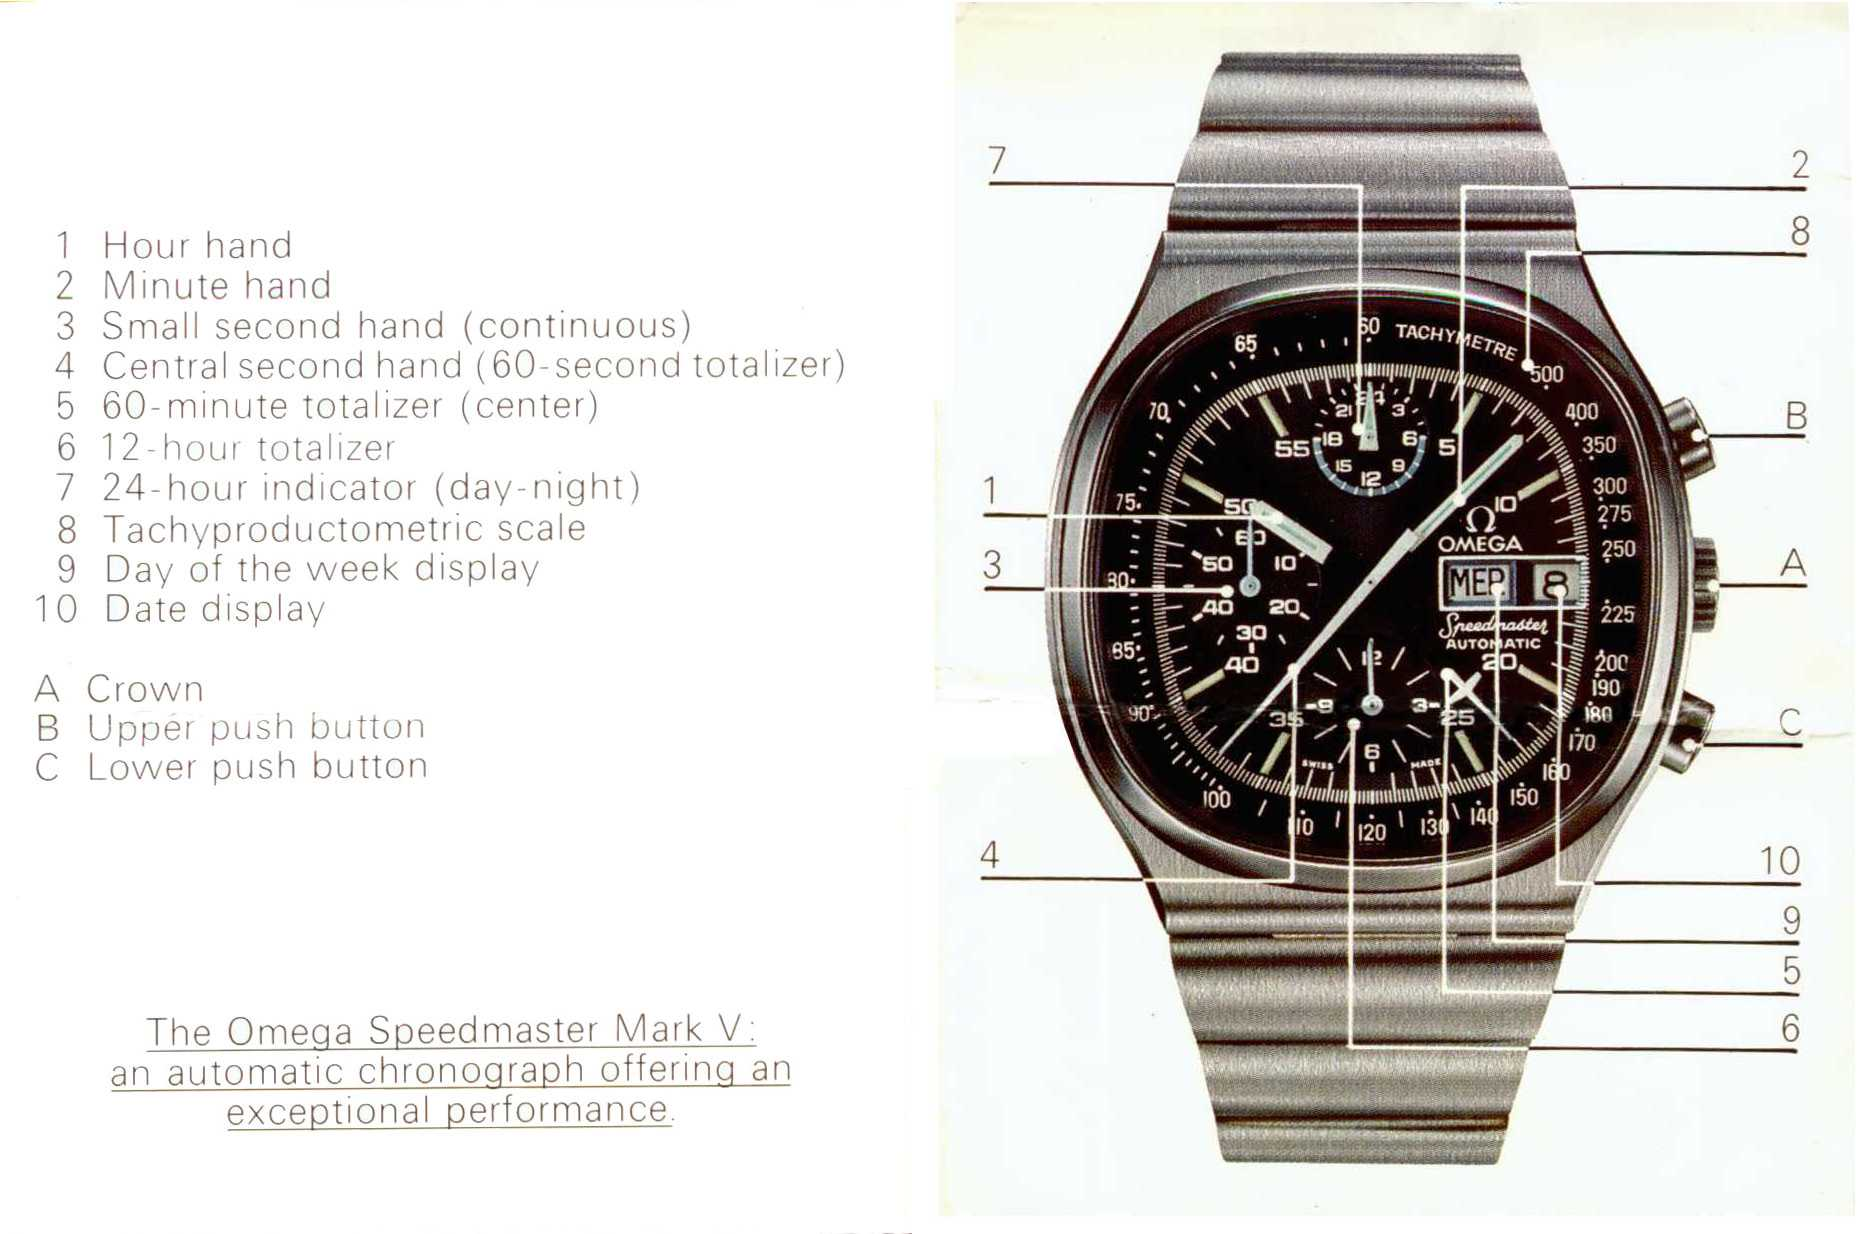 Omega Chronograph Instructions Directions Watch Diagram